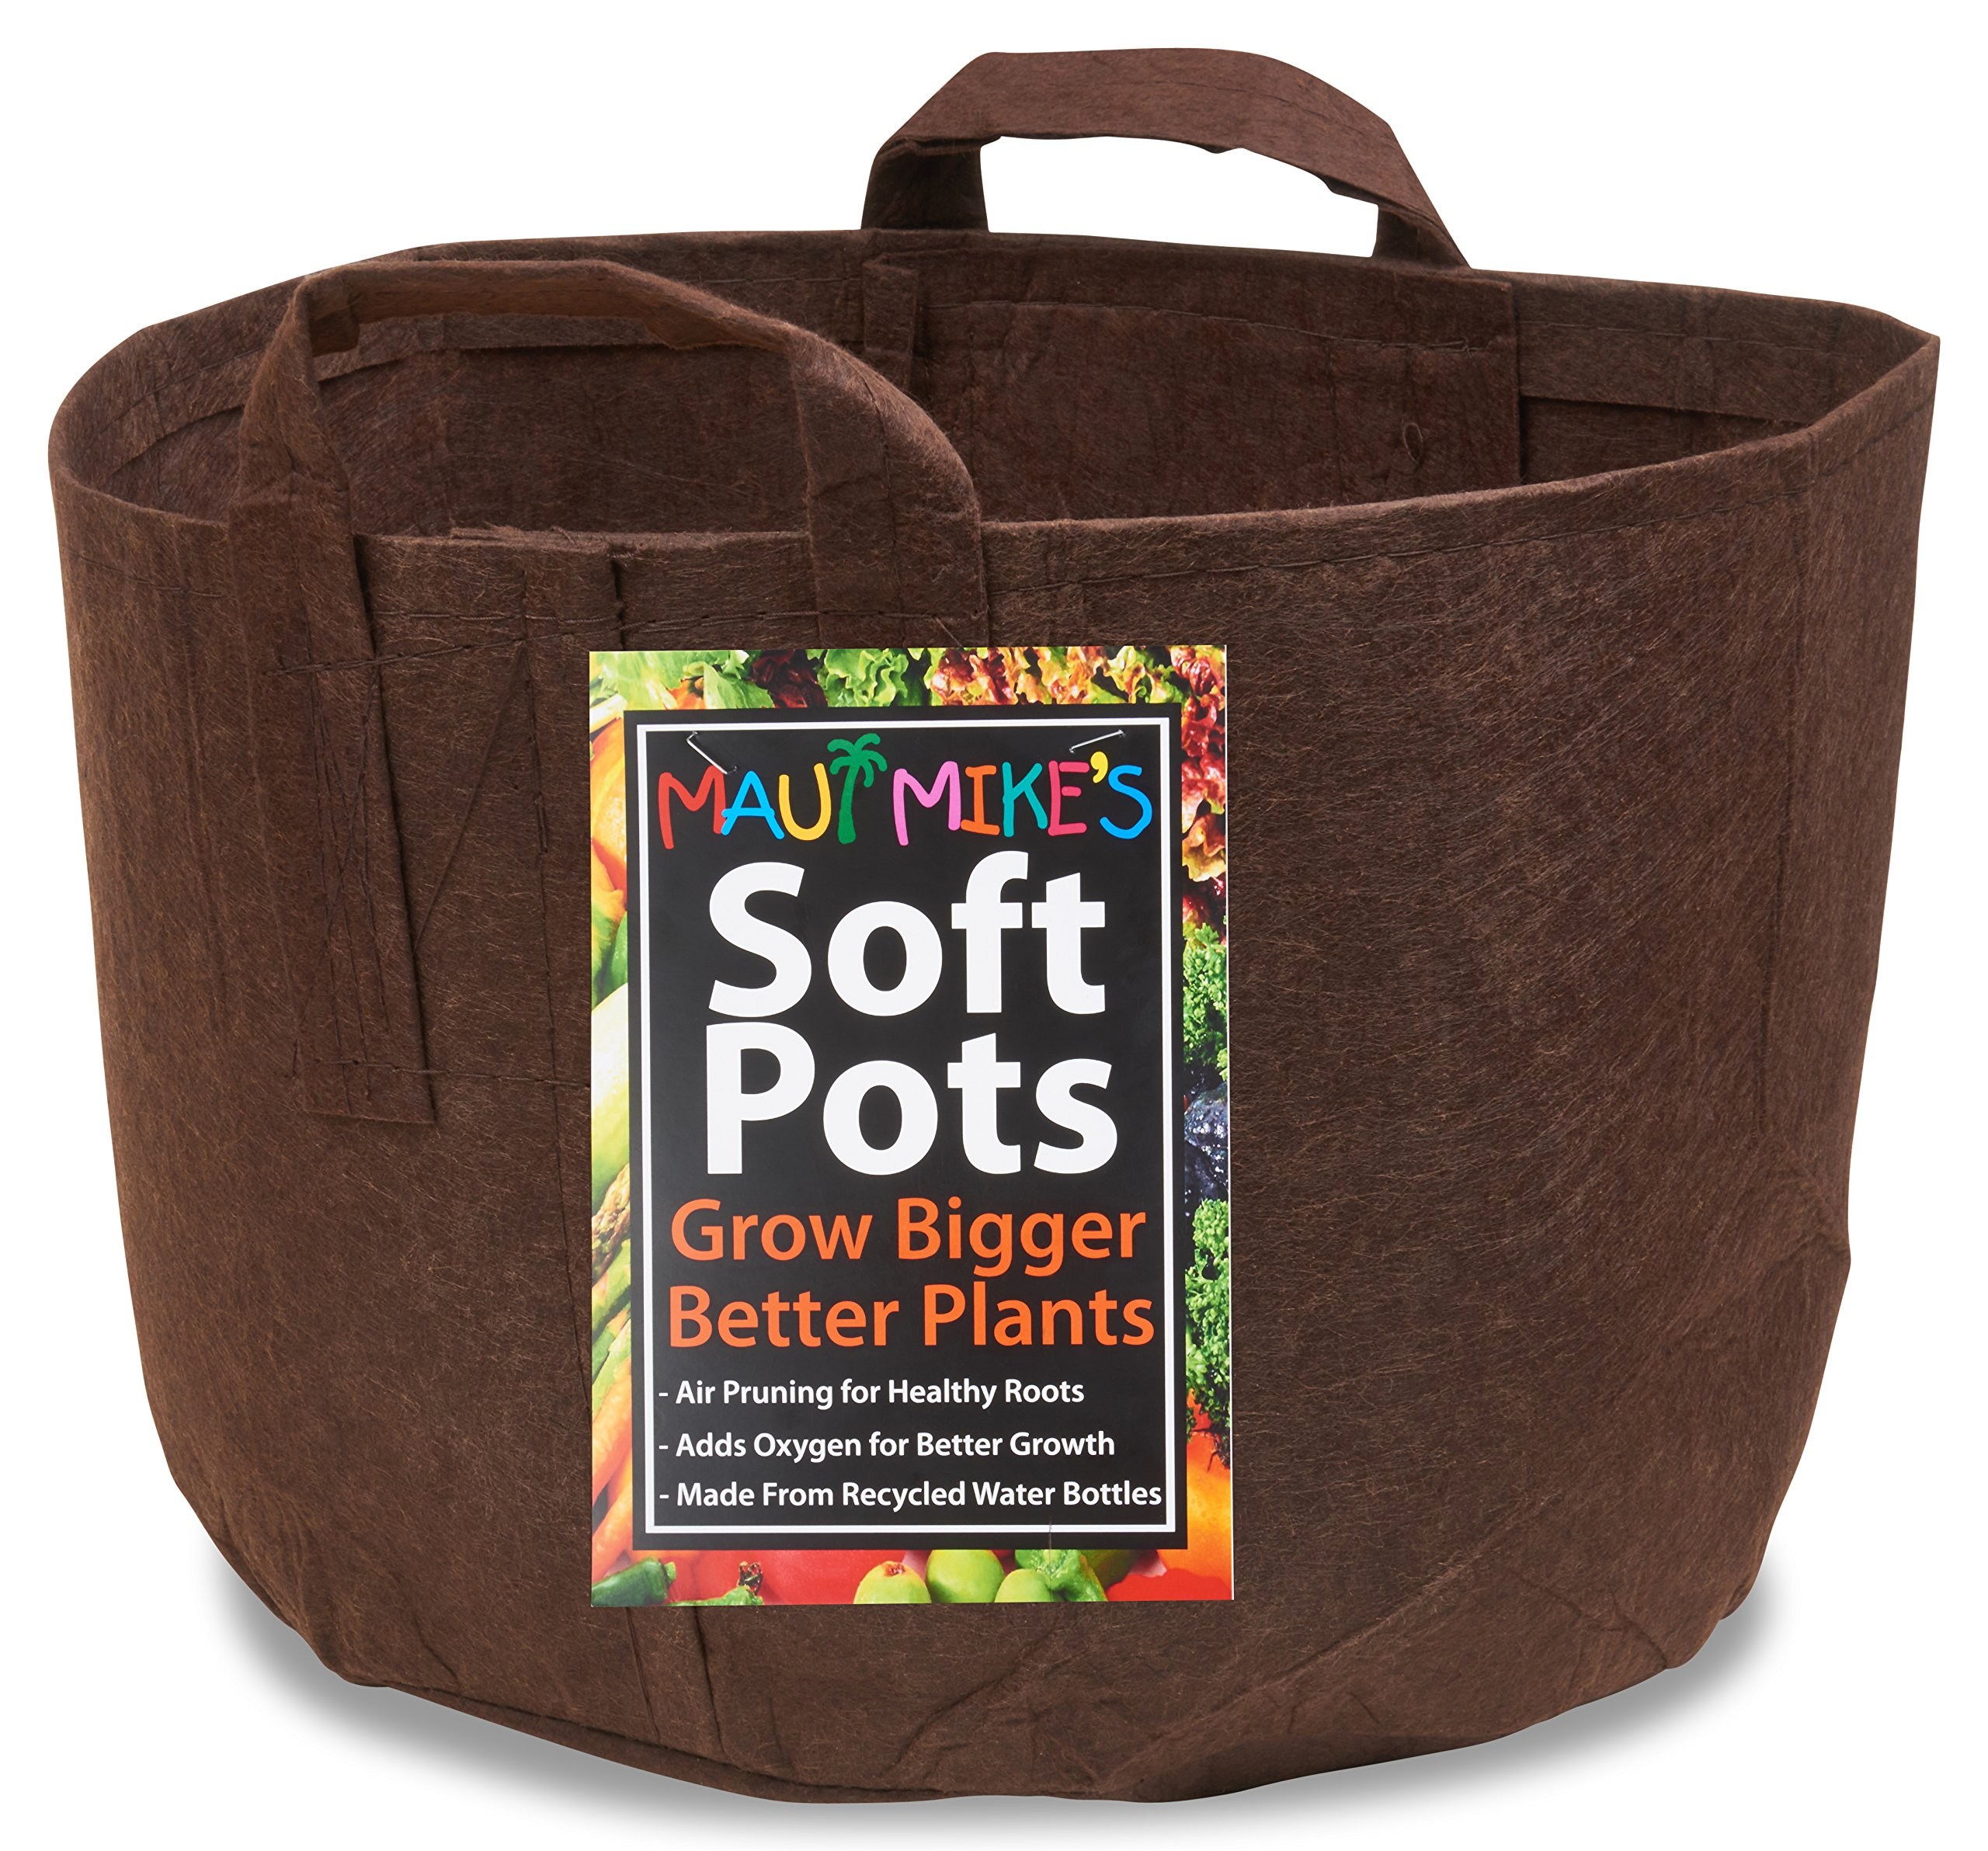 SOFT POTS (15 GALLON) BEST FABRIC AERATION GARDEN POTS FROM MAUI MIKE'S. THICKER FABRIC AND SEWN HANDLES FOR EASY MOVING. GROW BIGGER AND HEALTHIER TOMATOES, VEGGIES AND HERBS IN SOFT POTS. by Maui Mike's Lip Balm